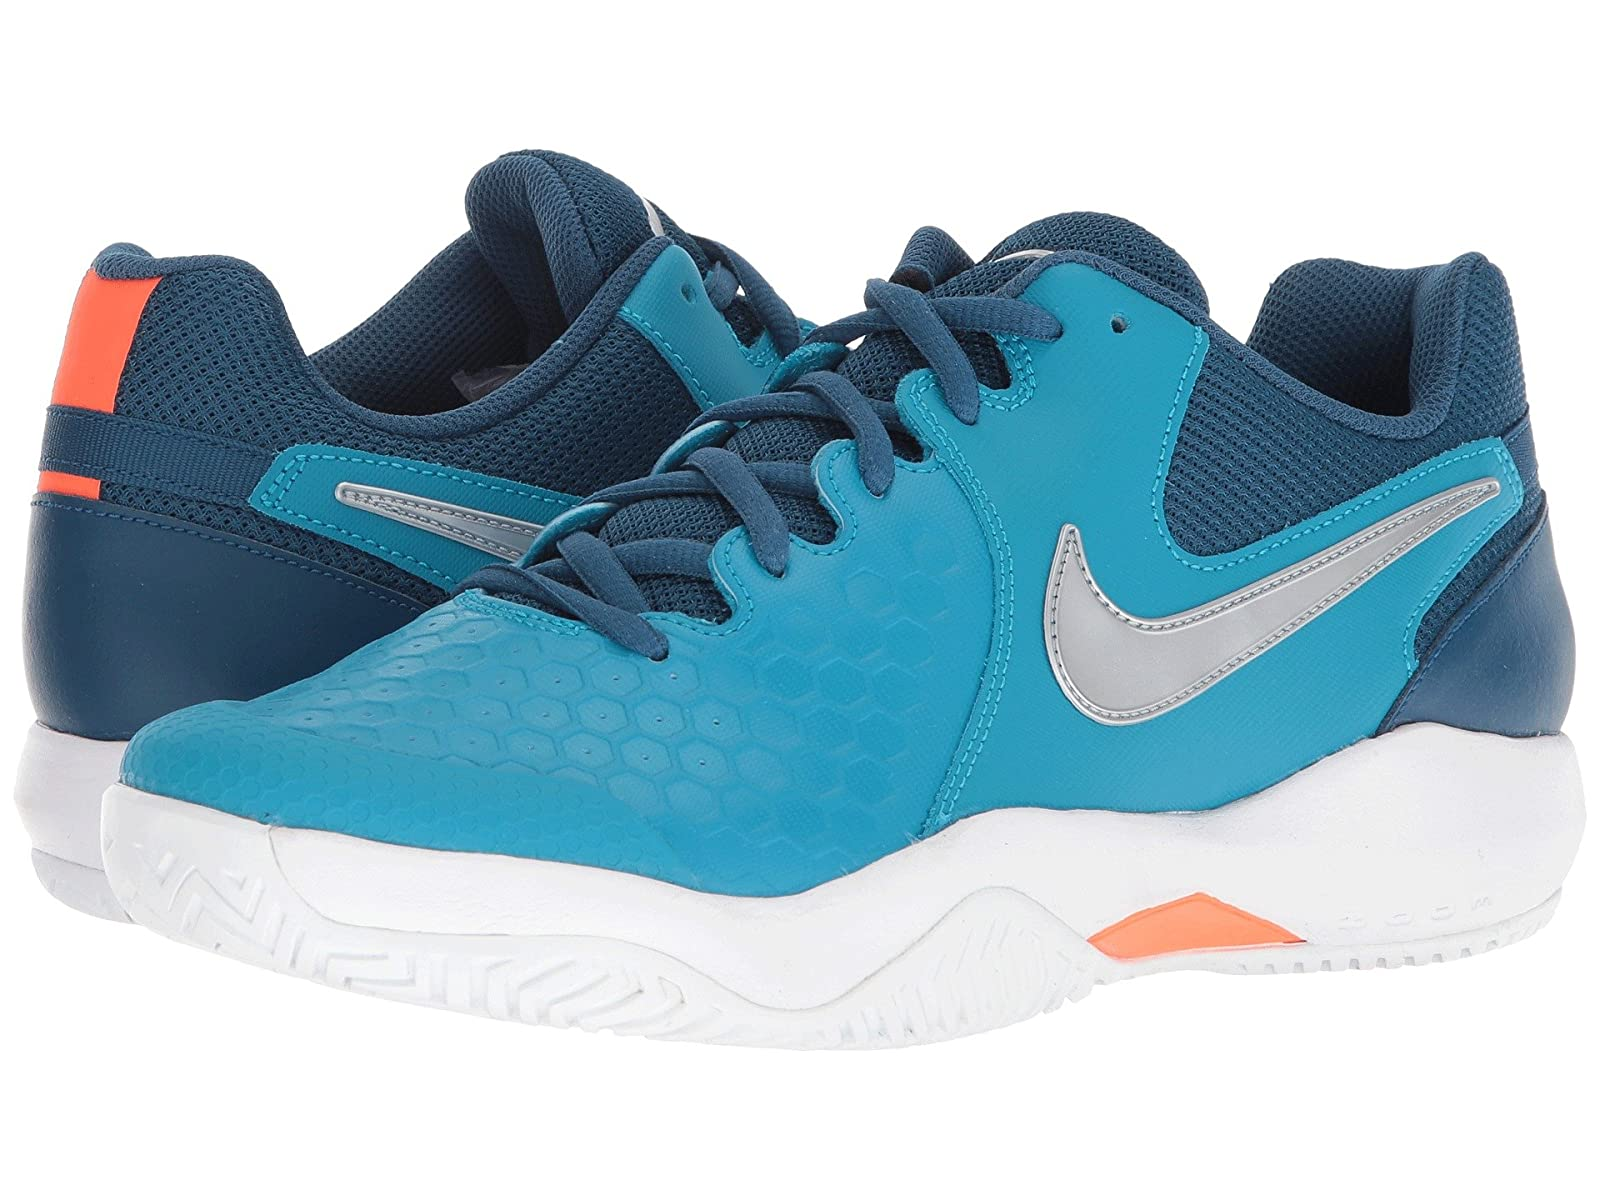 Nike Air Zoom ResistanceCheap and distinctive eye-catching shoes